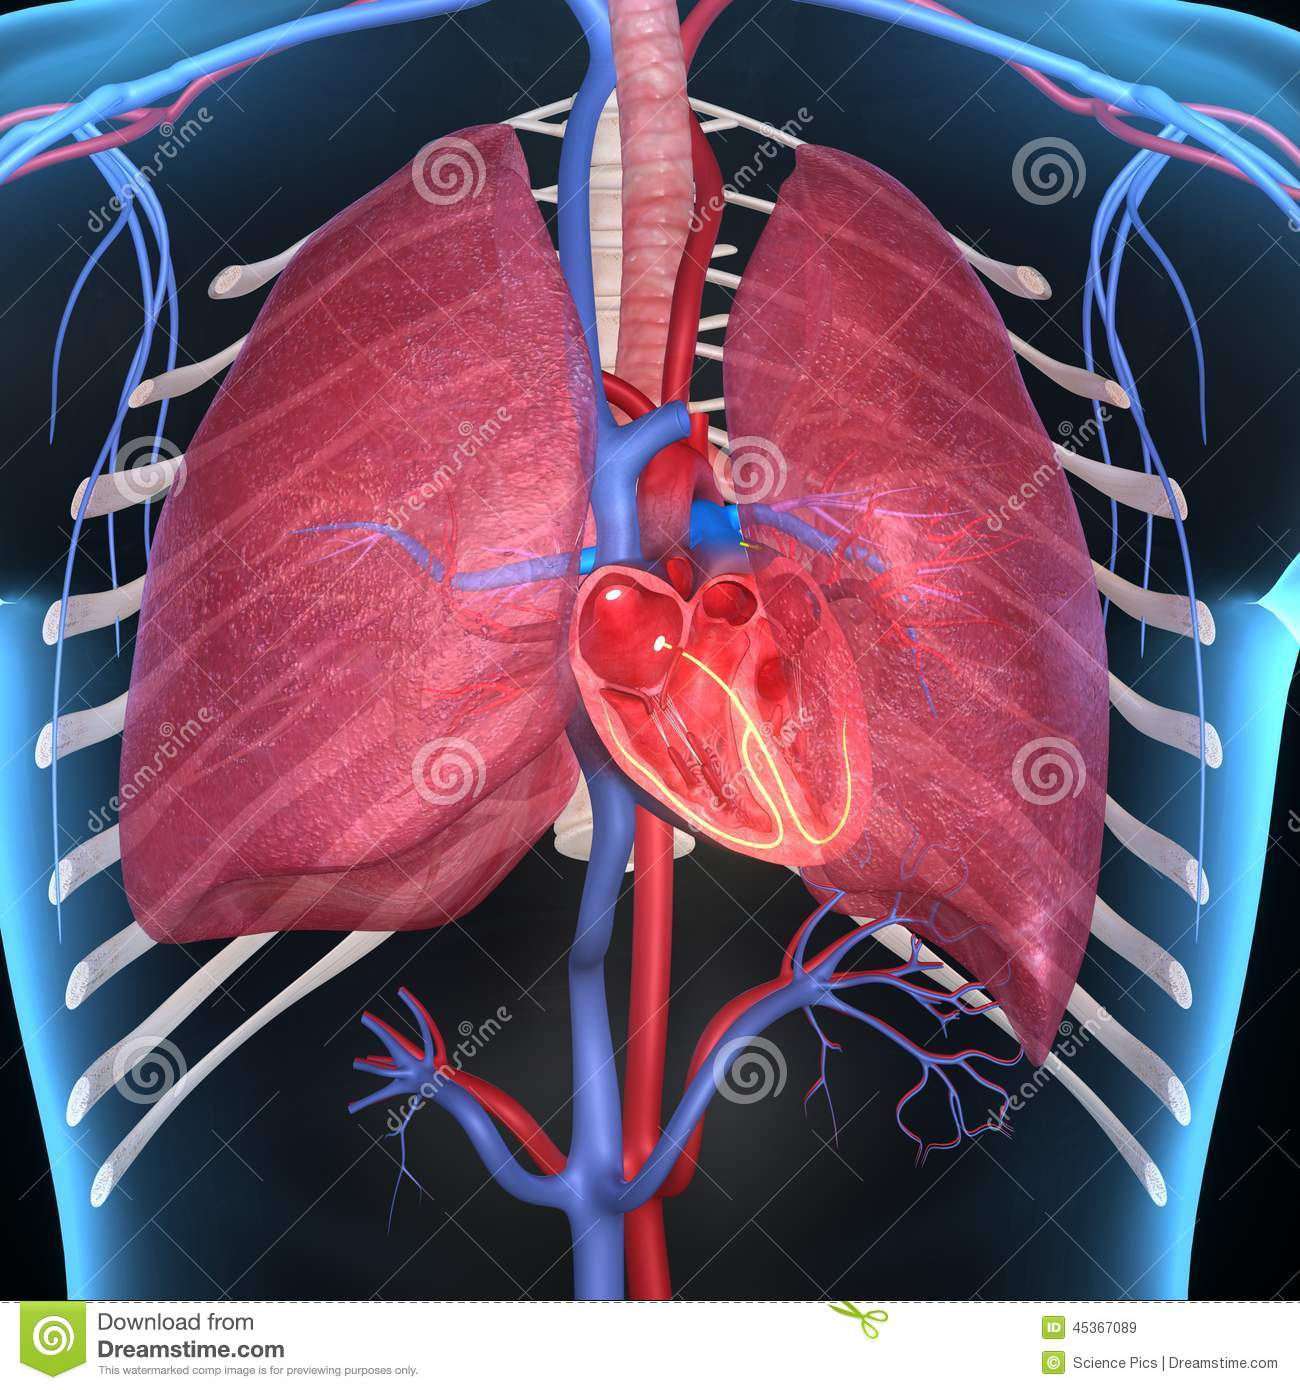 lungs human anatomy diagram gentec phase converter wiring heart with stock illustration - image: 45367089